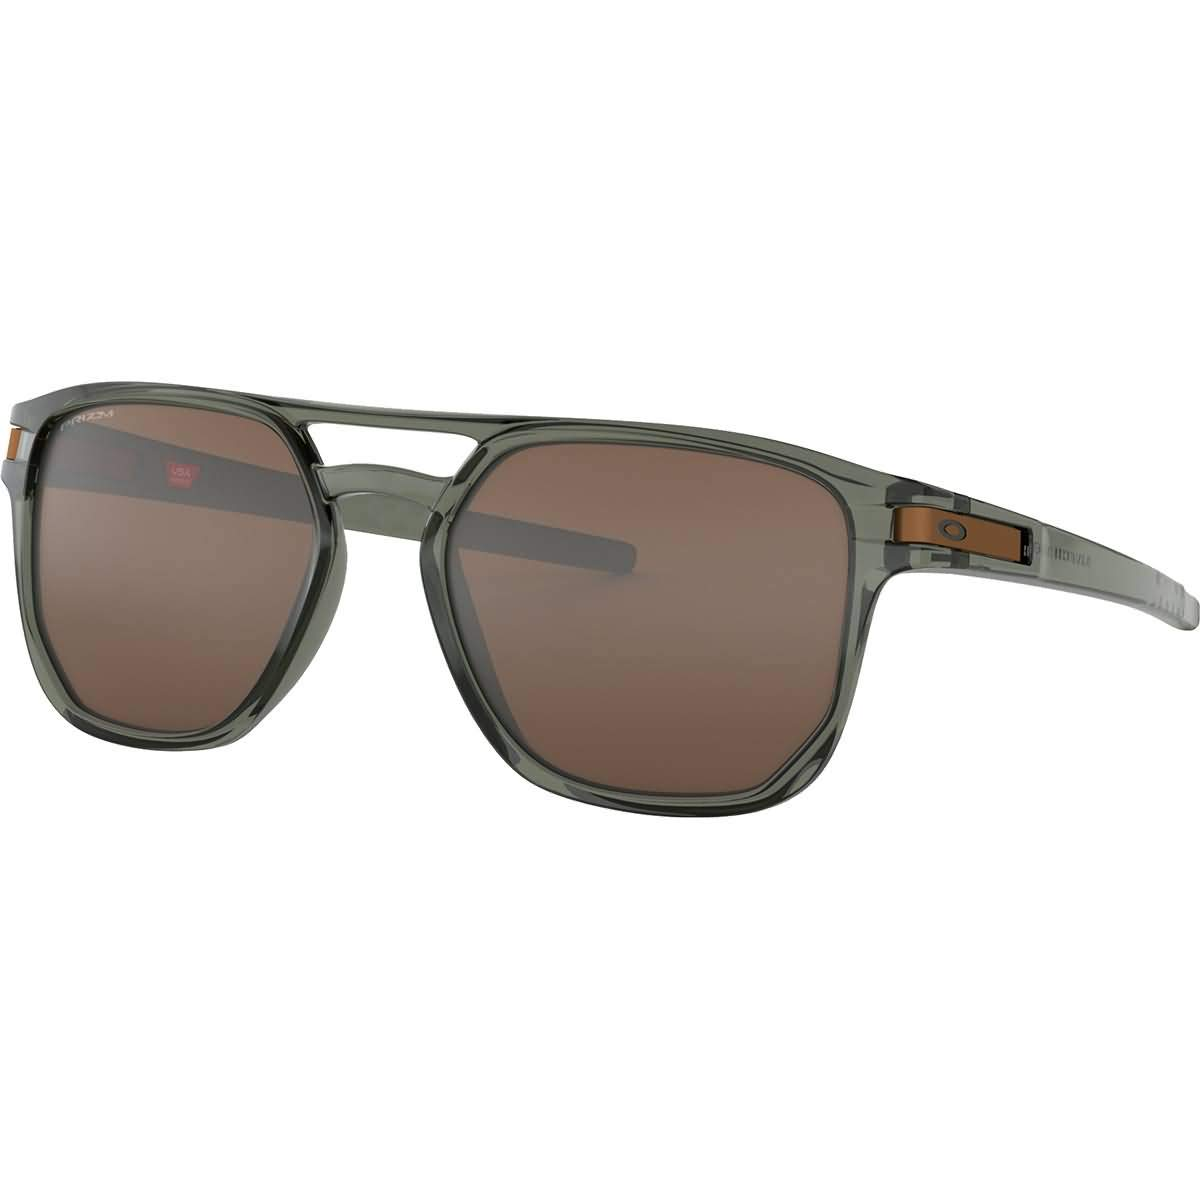 Oakley Men's OO9436 Latch Beta Square Sunglasses, Olive Ink/Prizm Tungsten, 54 mm by Oakley